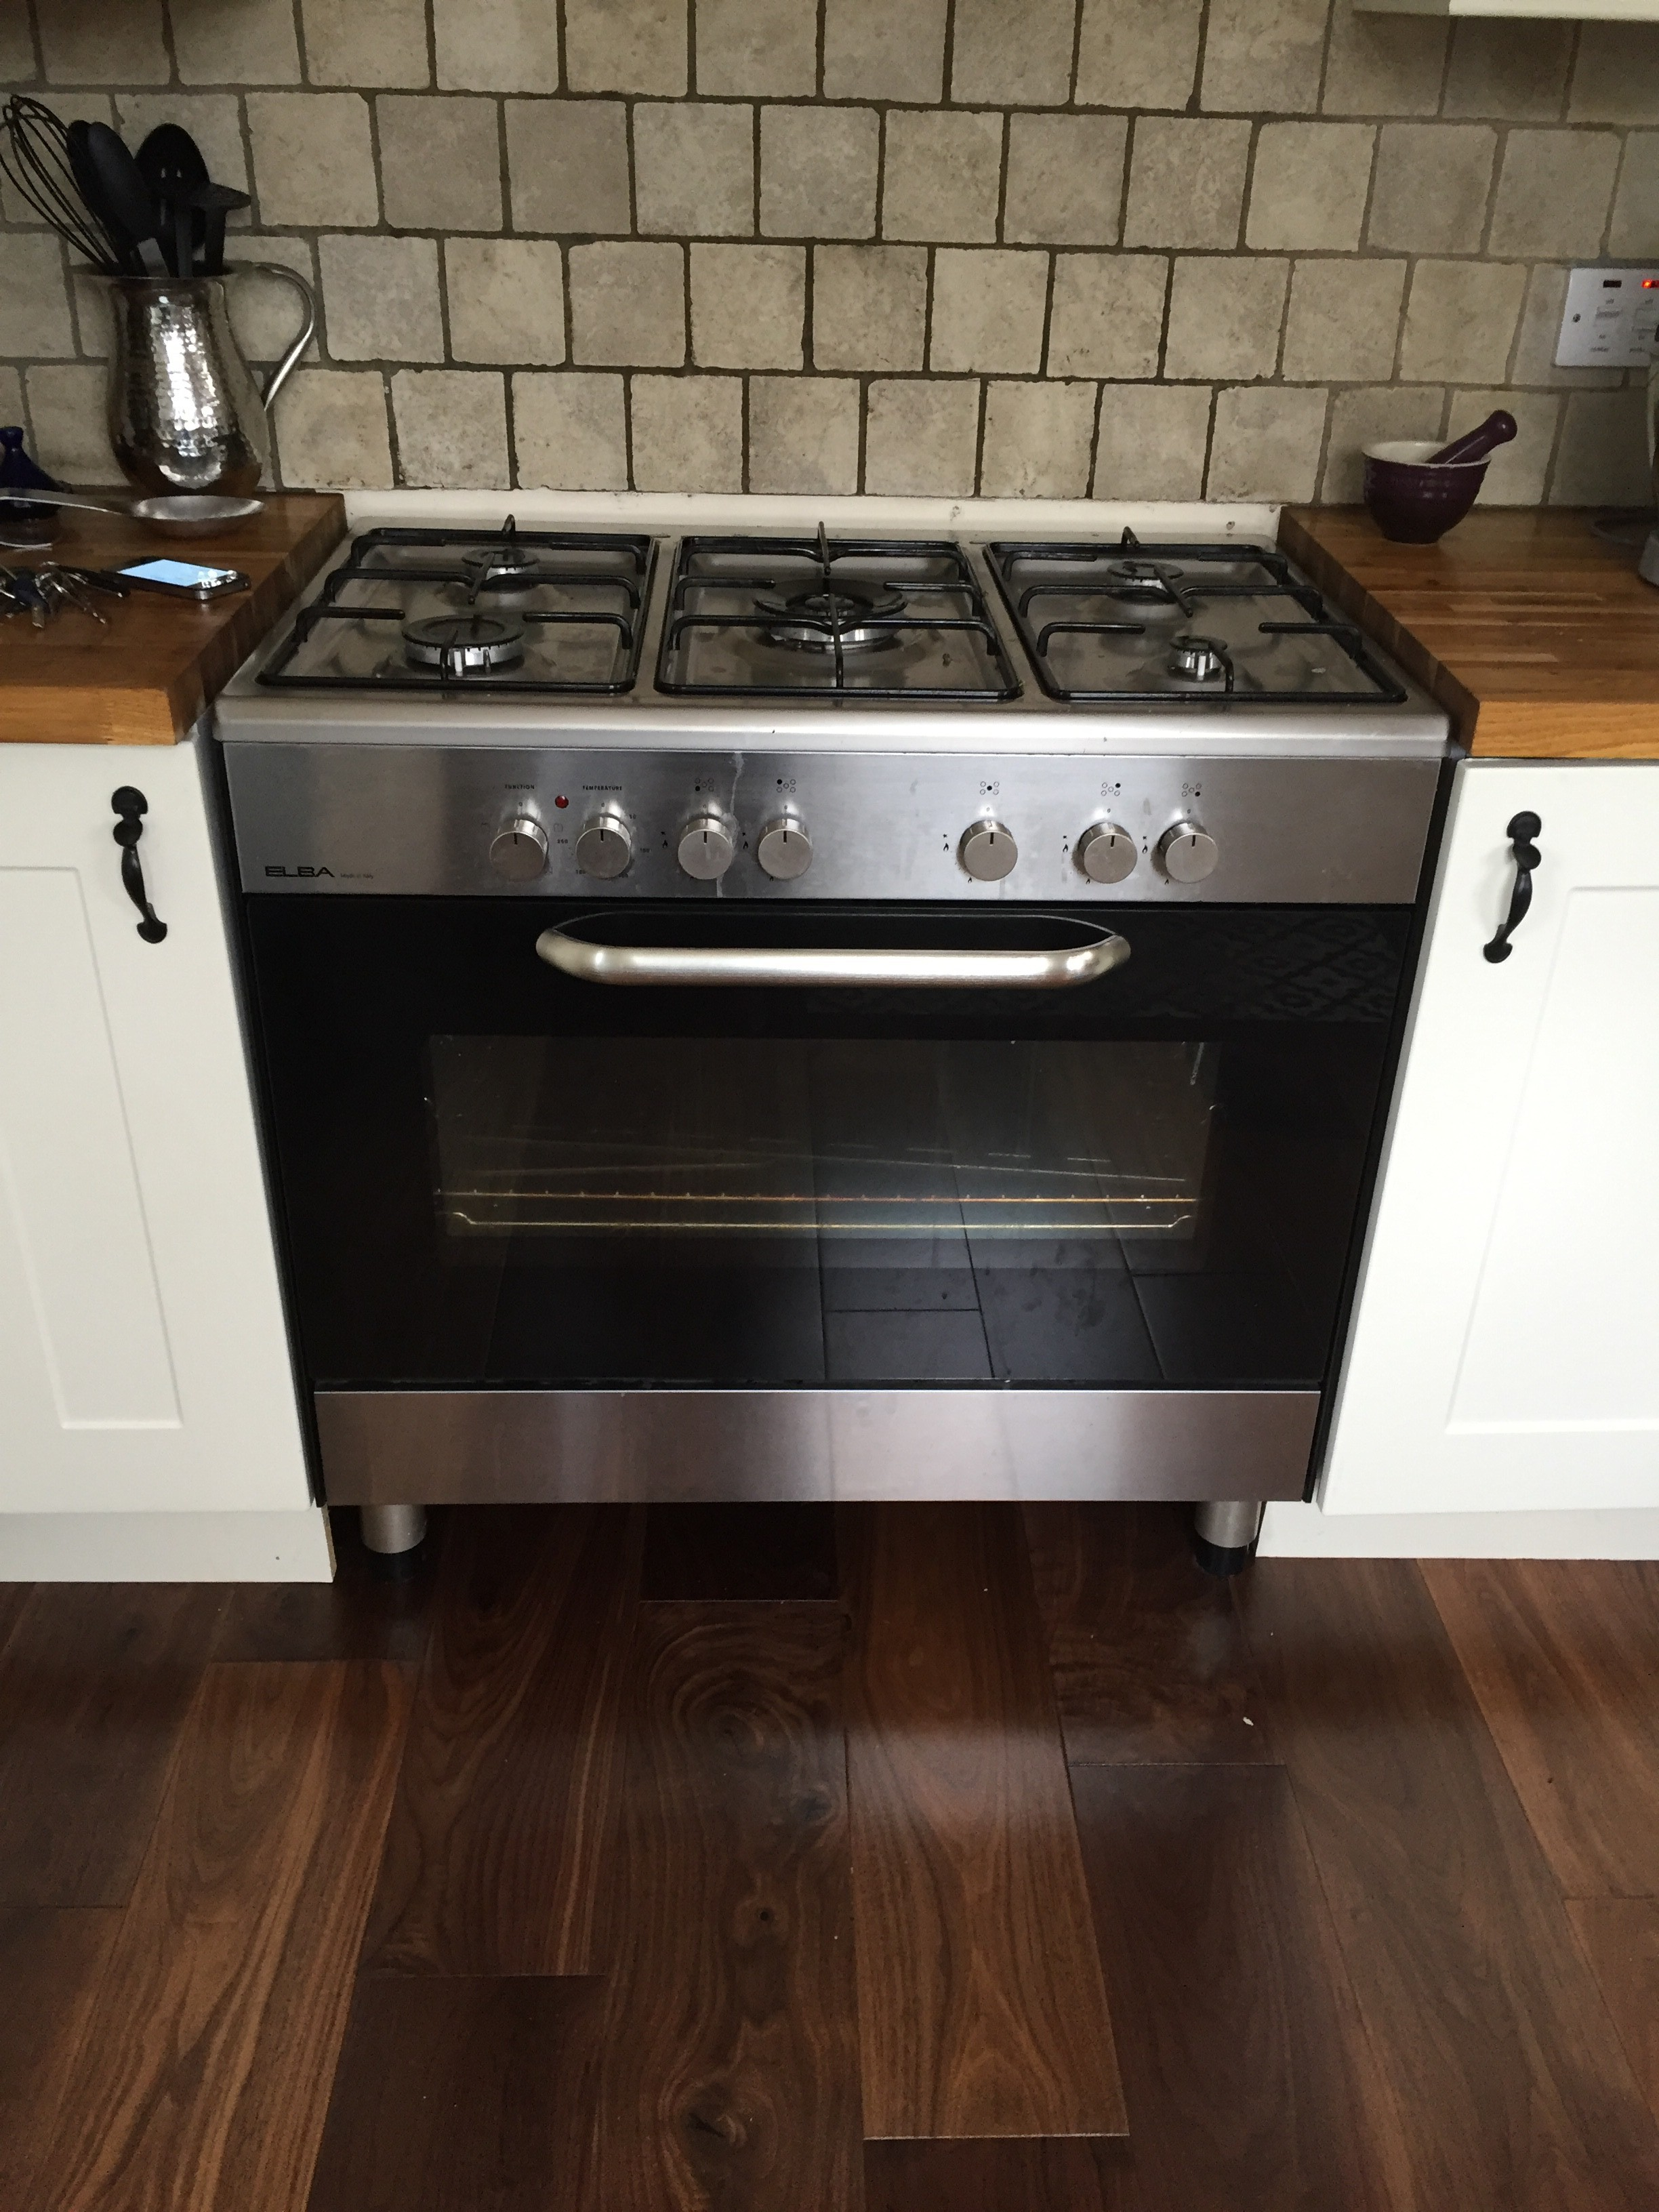 Cooker After Repair